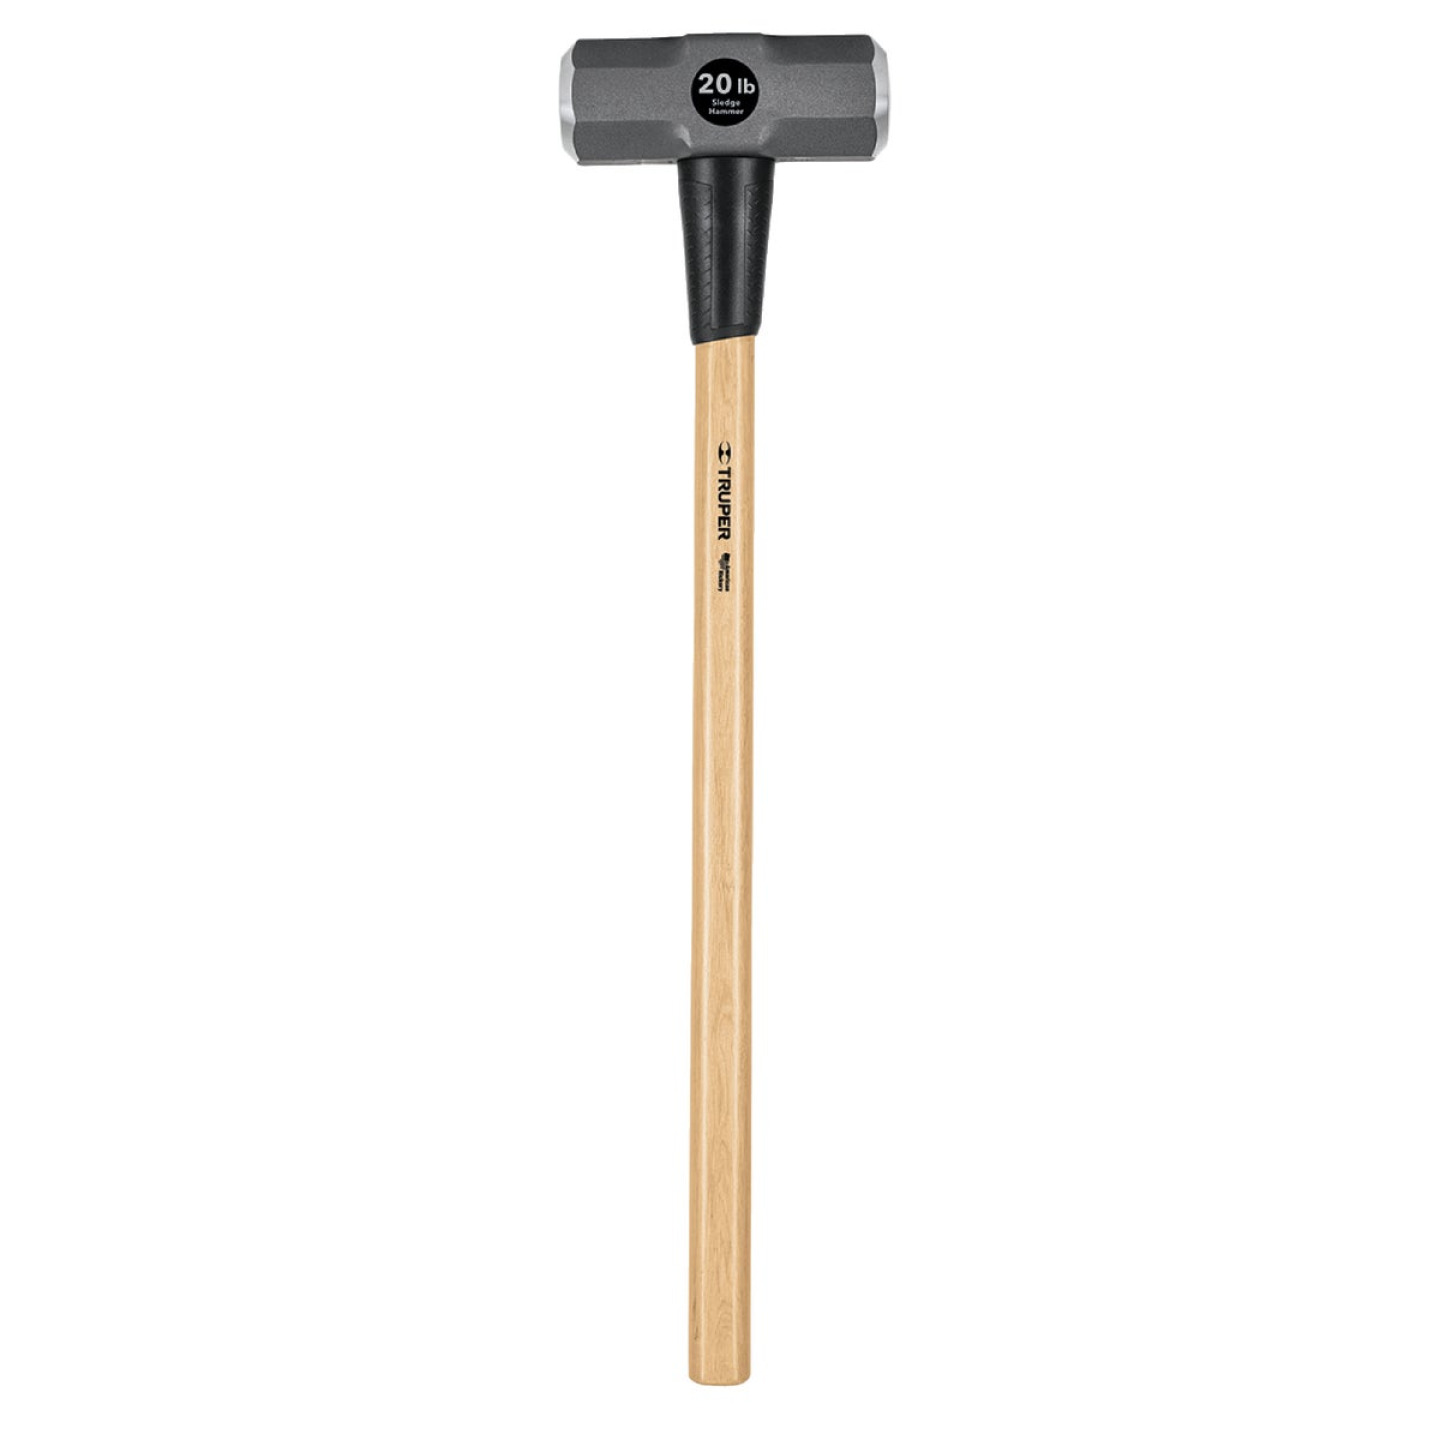 Truper 20 Lb. Double-Faced Sledge Hammer with 36 In. Hickory Handle Image 1